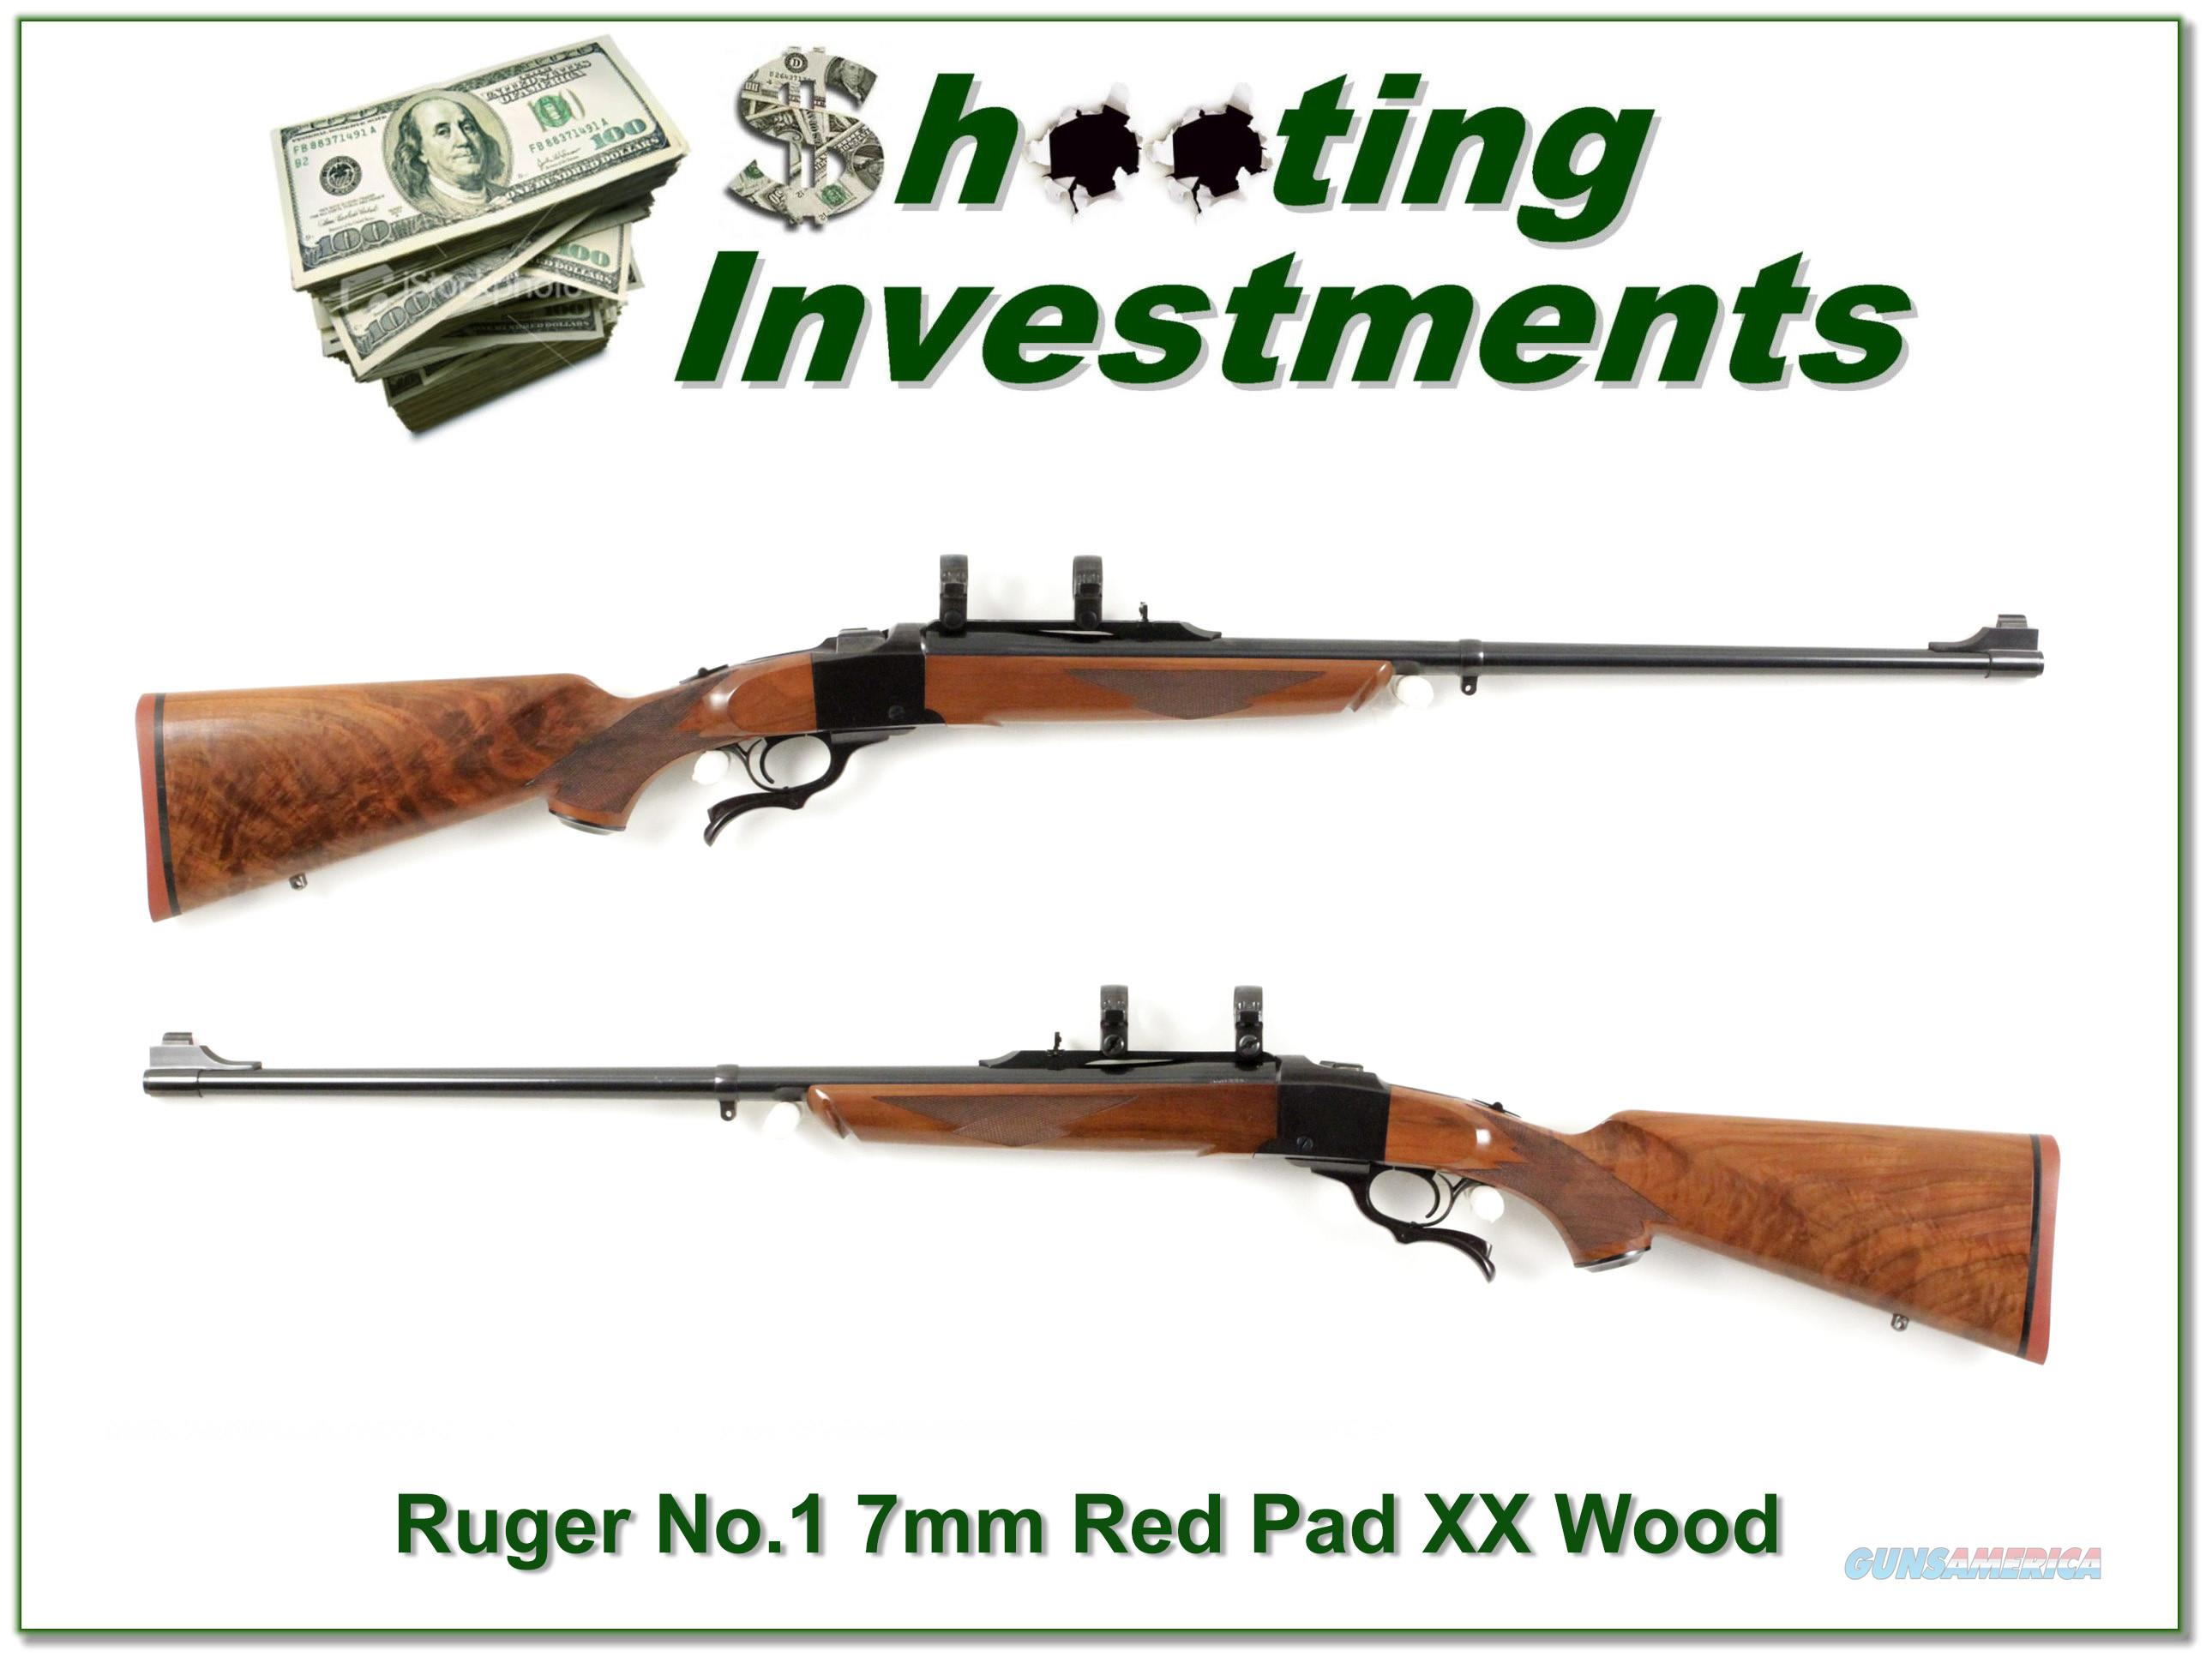 Ruger No. 1 Medium Sporter 7mm Rem Mag Red Pad super wood!  Guns > Rifles > Ruger Rifles > #1 Type